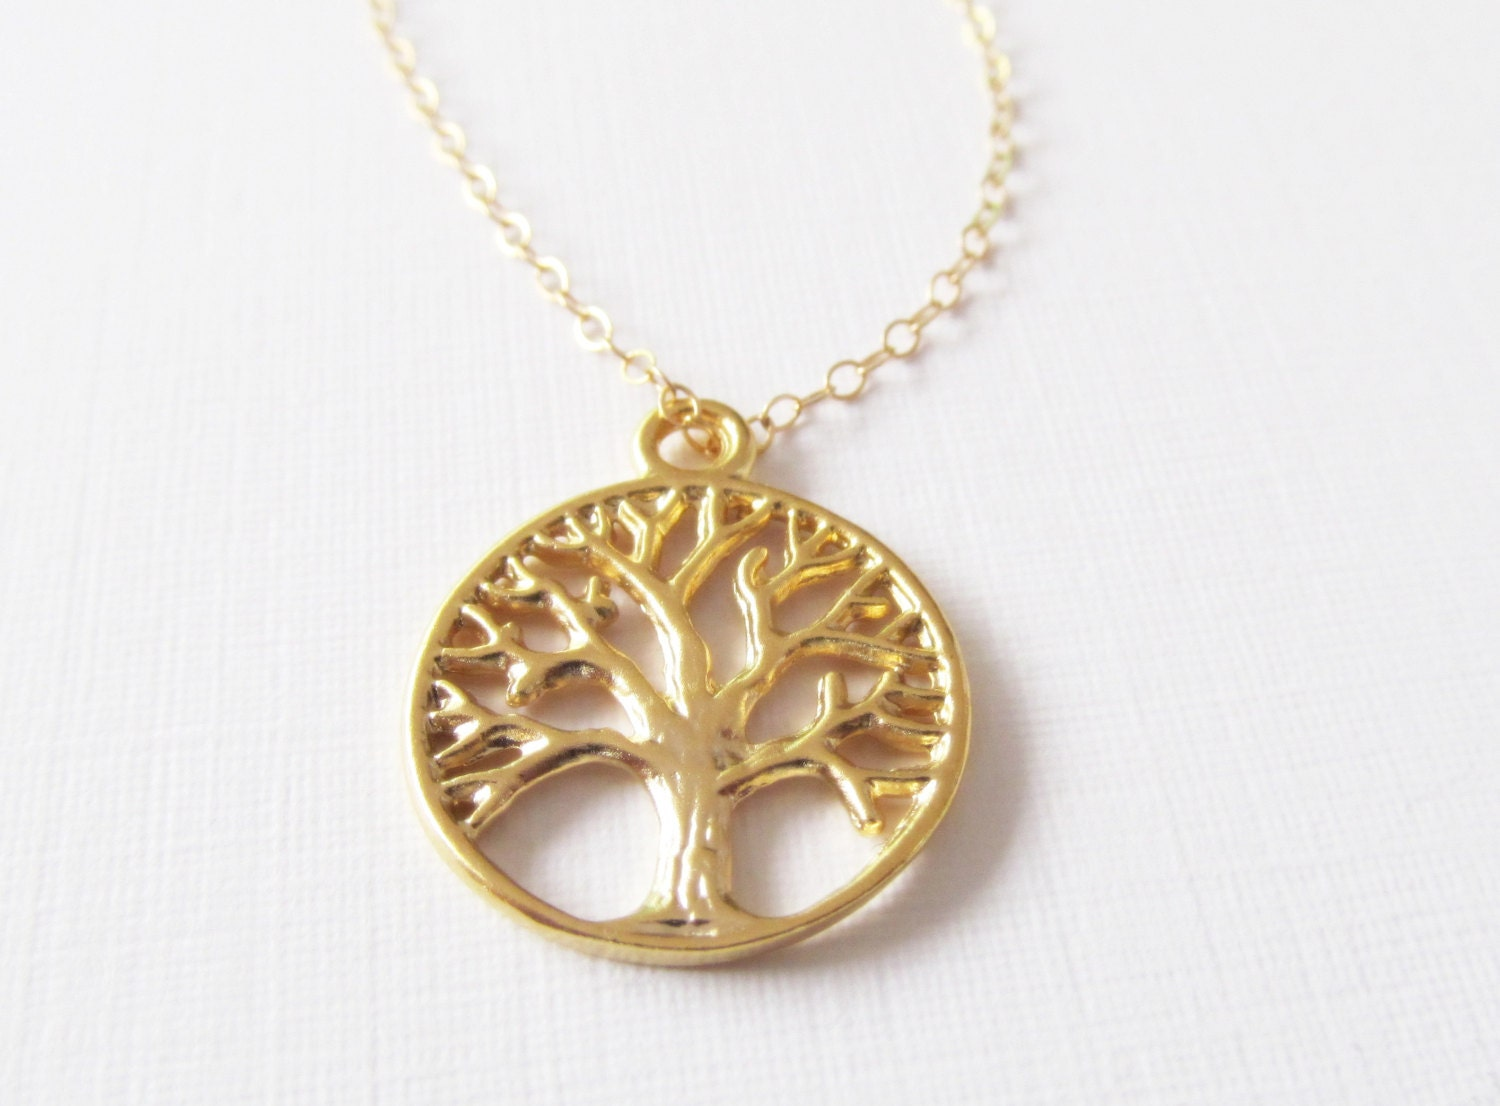 Tree of Life Necklace, 14kt Gold Filled Necklace, Gift for Her